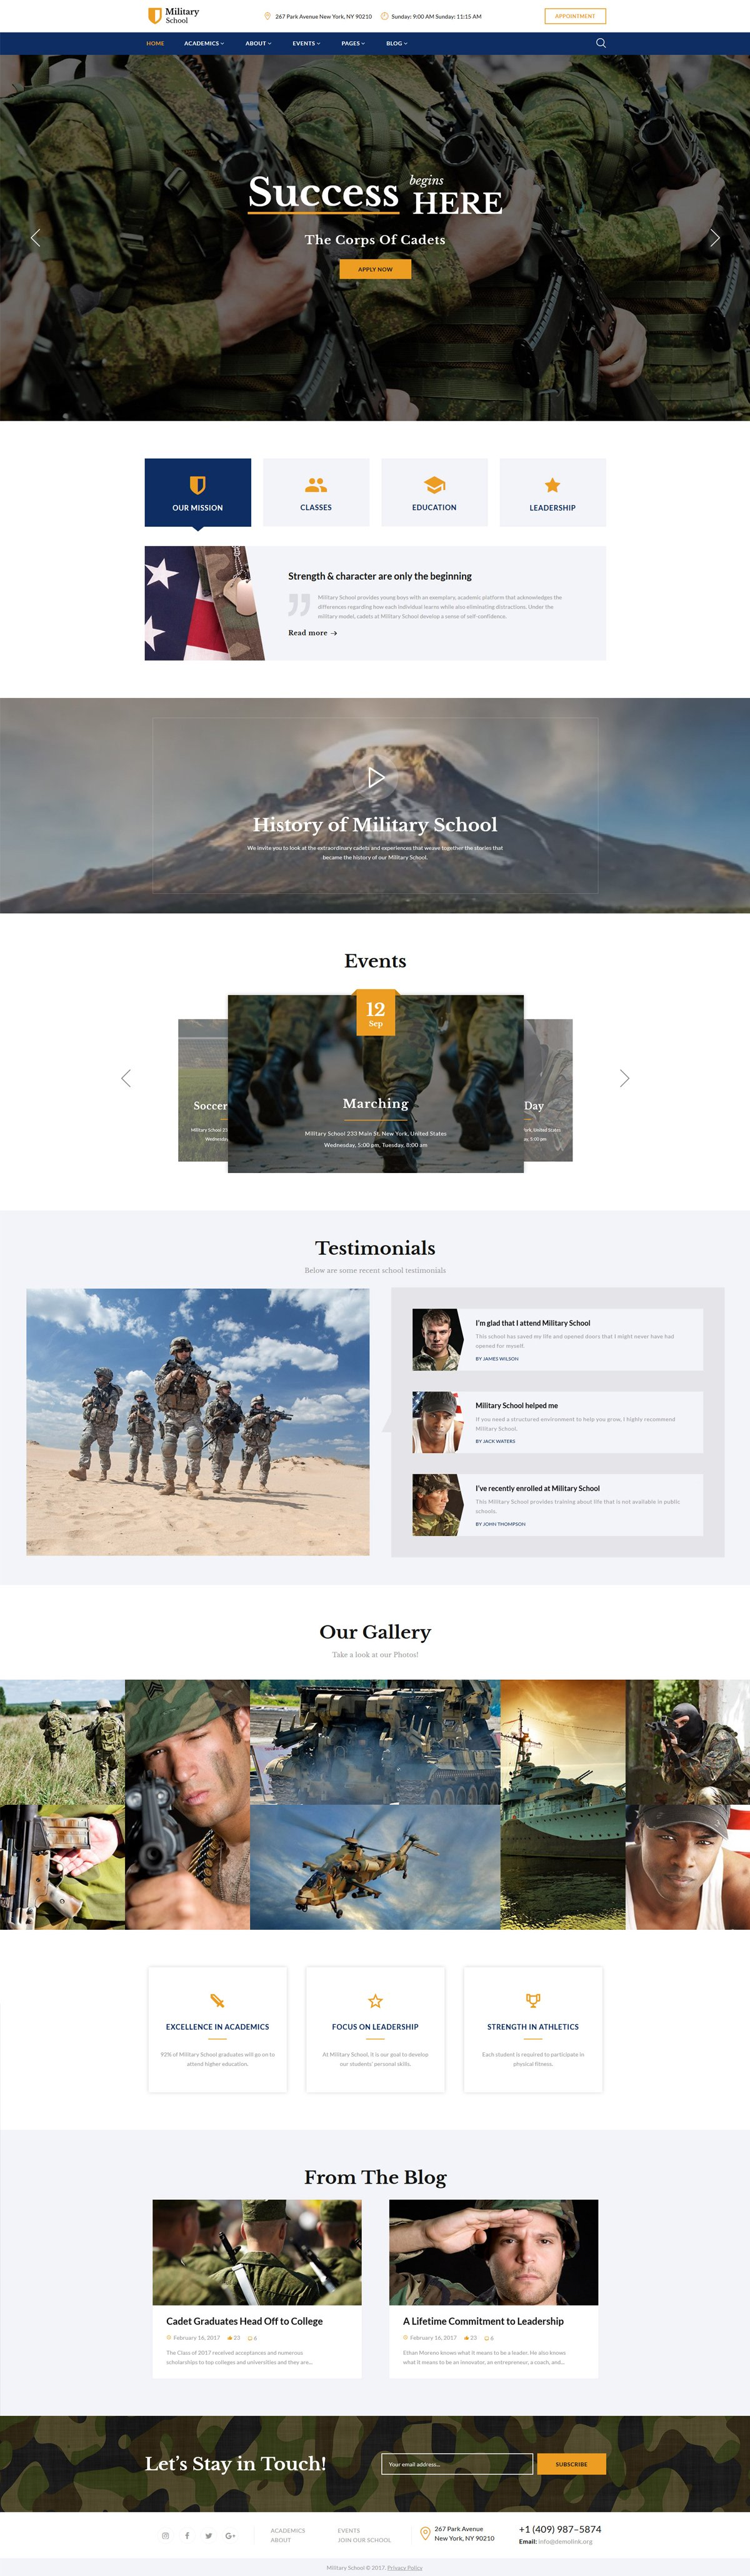 Military School Multipage Website Template